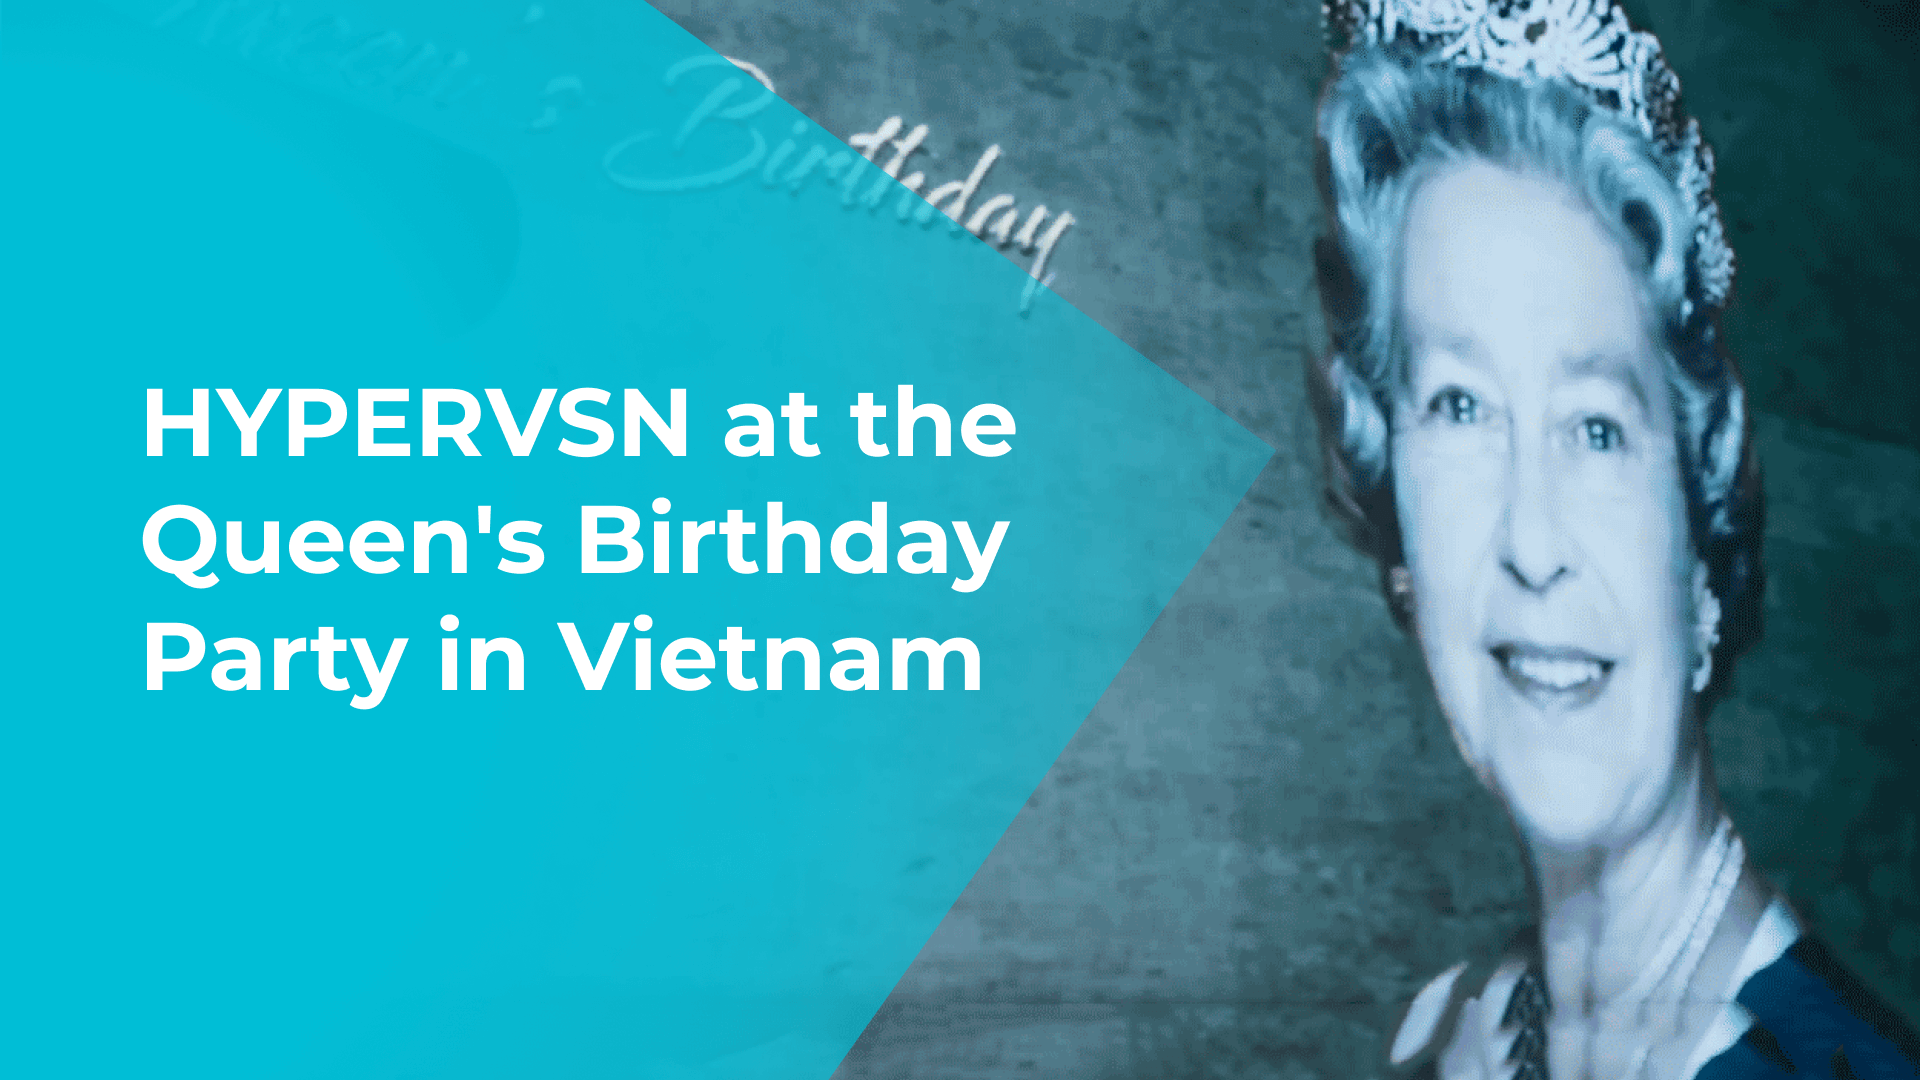 HYPERVSN at the Queen's Birthday Party in Vietnam